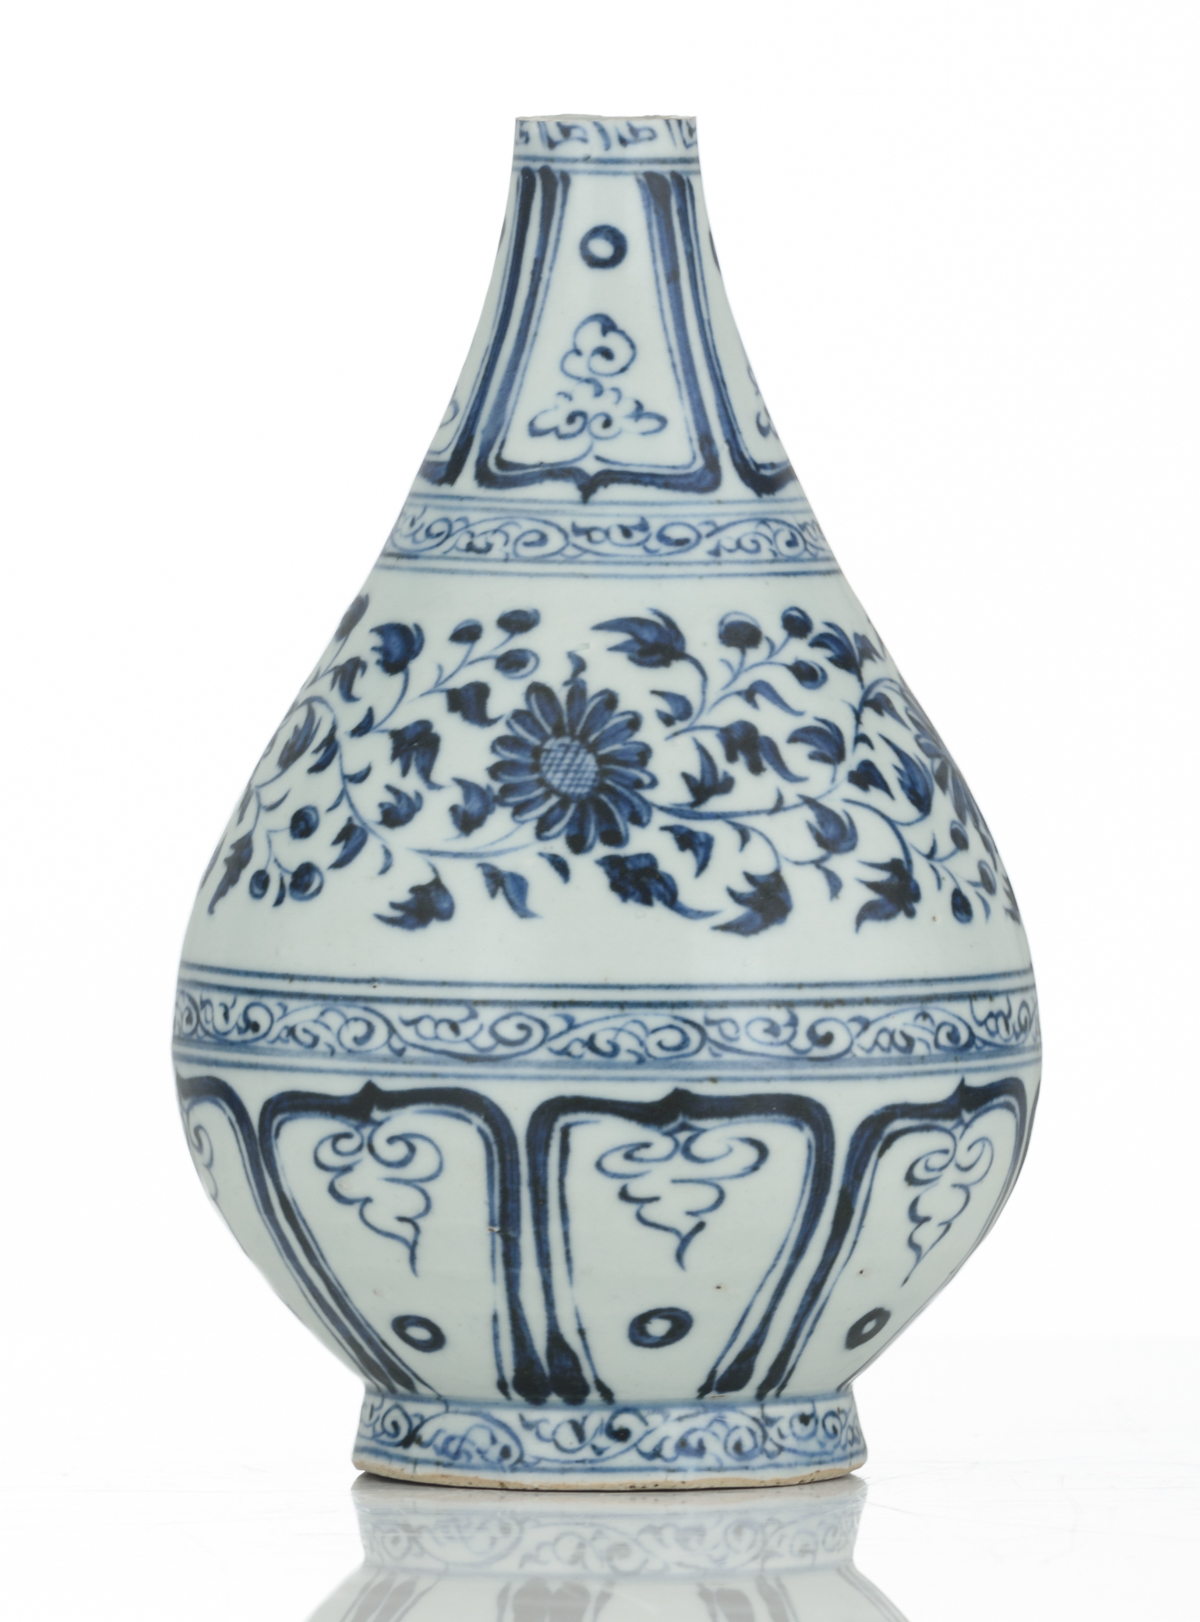 Lot 44 - A Chinese blue and white floral decorated Ming type bottle vase, 17thC, H 21,5 cm